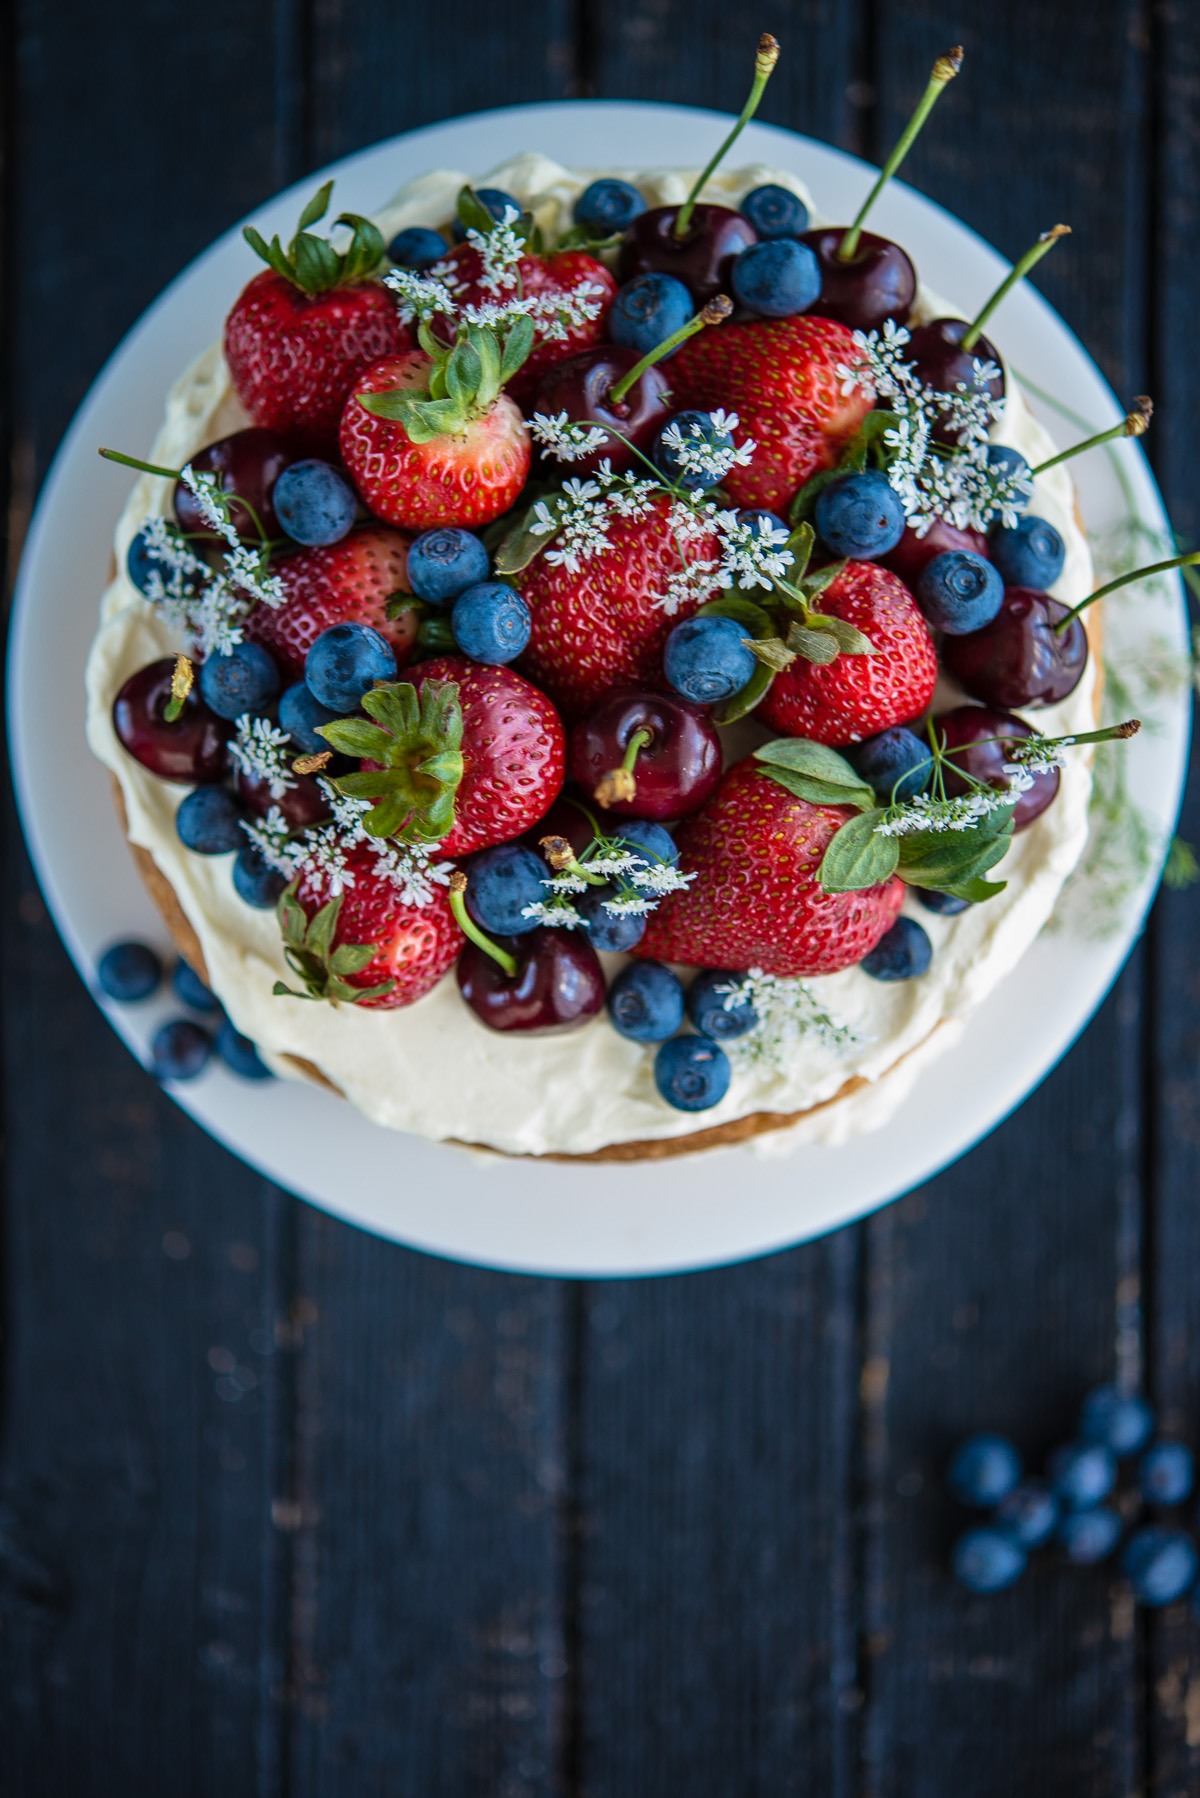 Natural Cake Decorating Ideas : Sponge Cake with Berries and Cherries The Hungry Australian